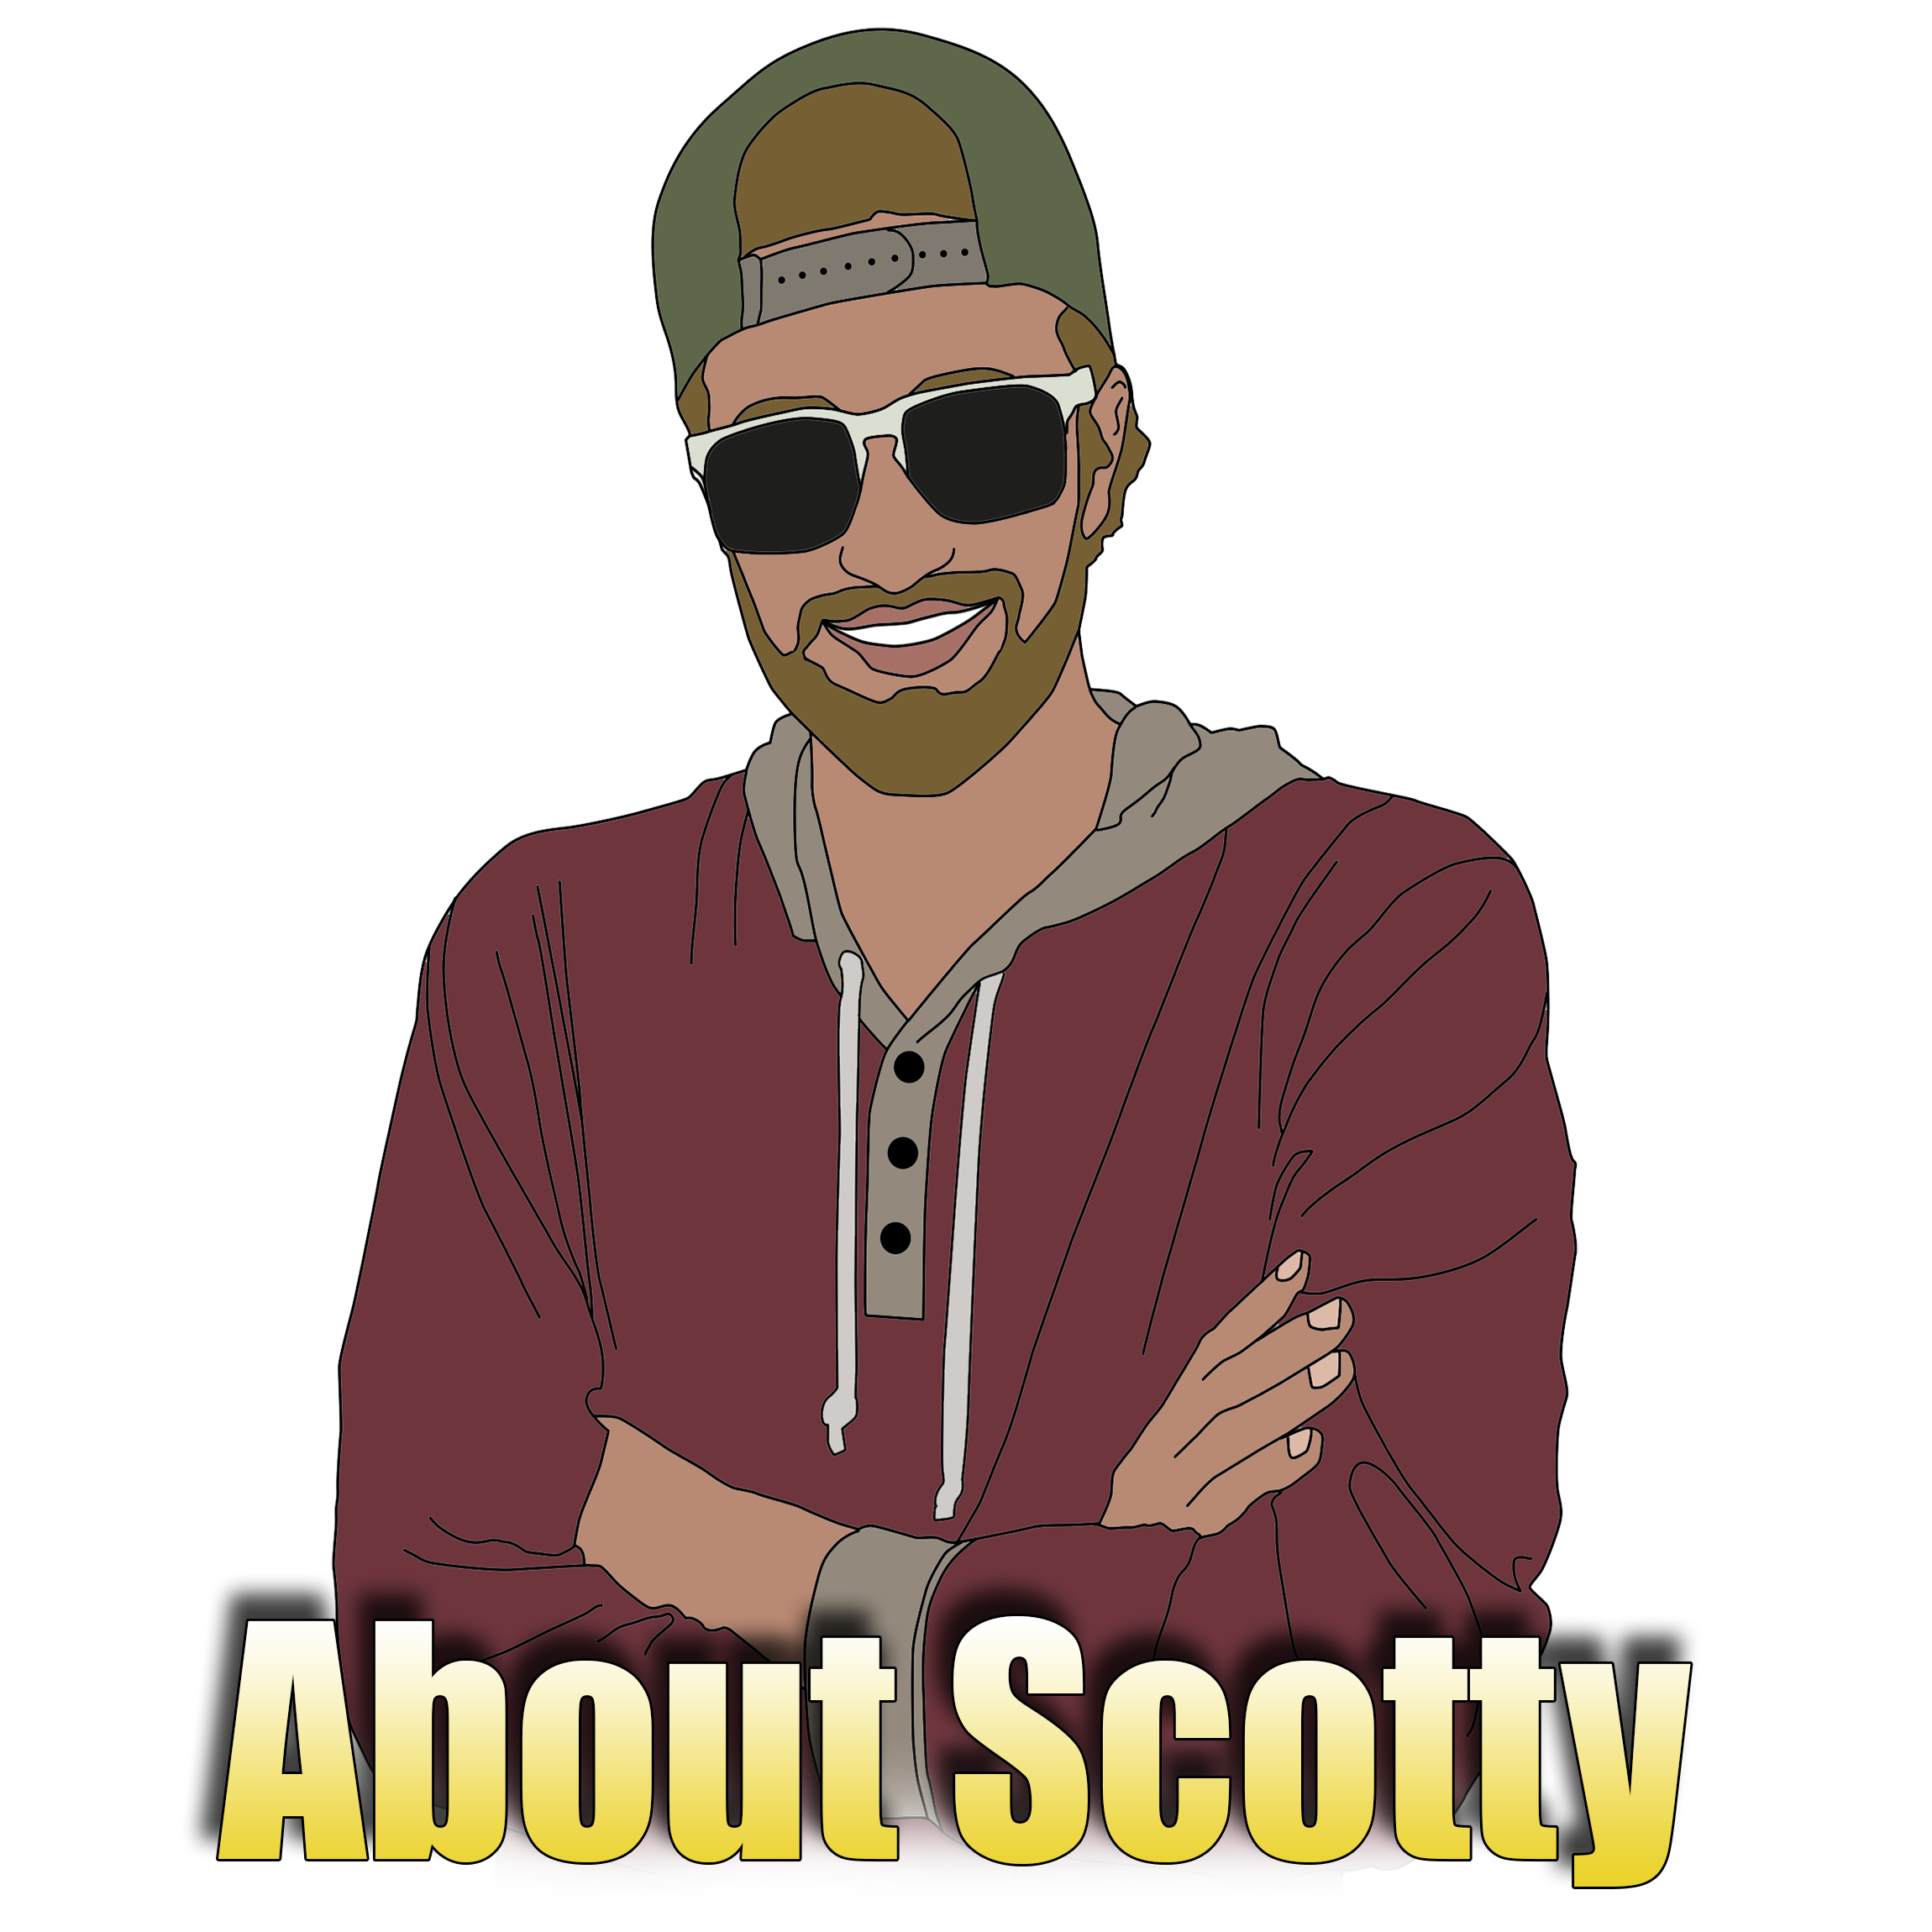 About scotty s traffic. Clipart hammer roofing tool